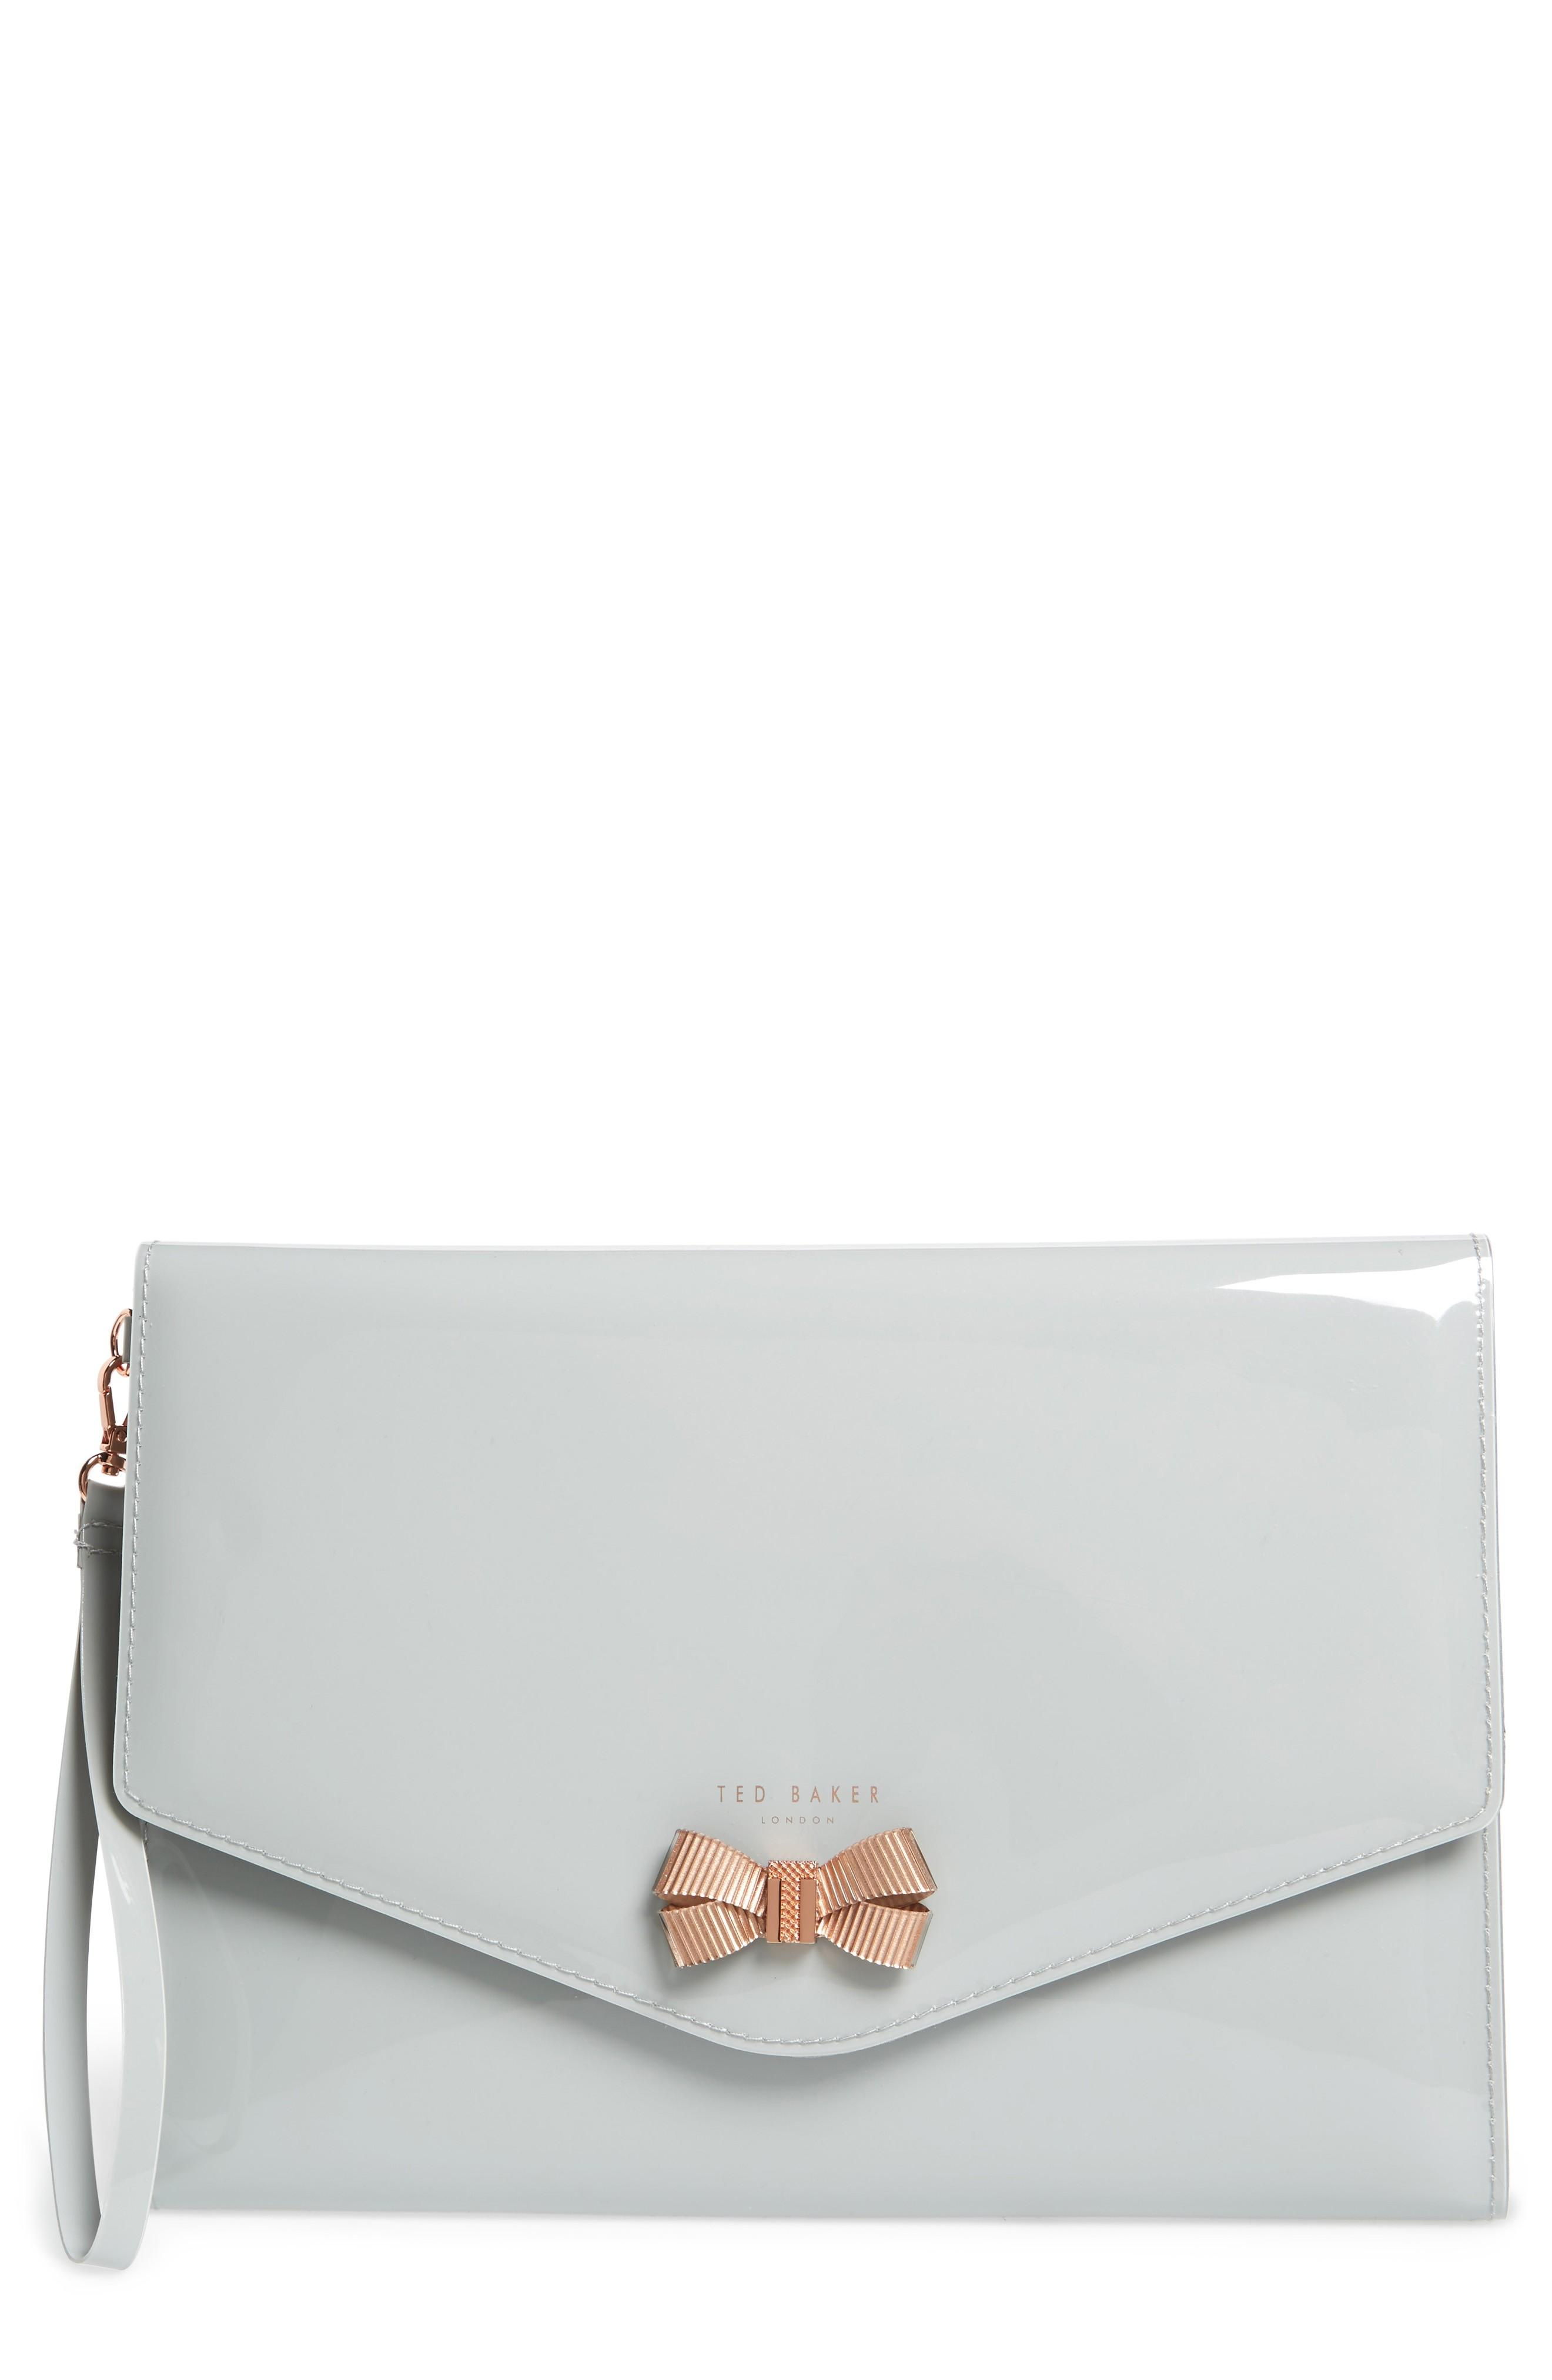 83f55f5819 Ted Baker Luanne Envelope Clutch - Grey In Mid Grey | ModeSens